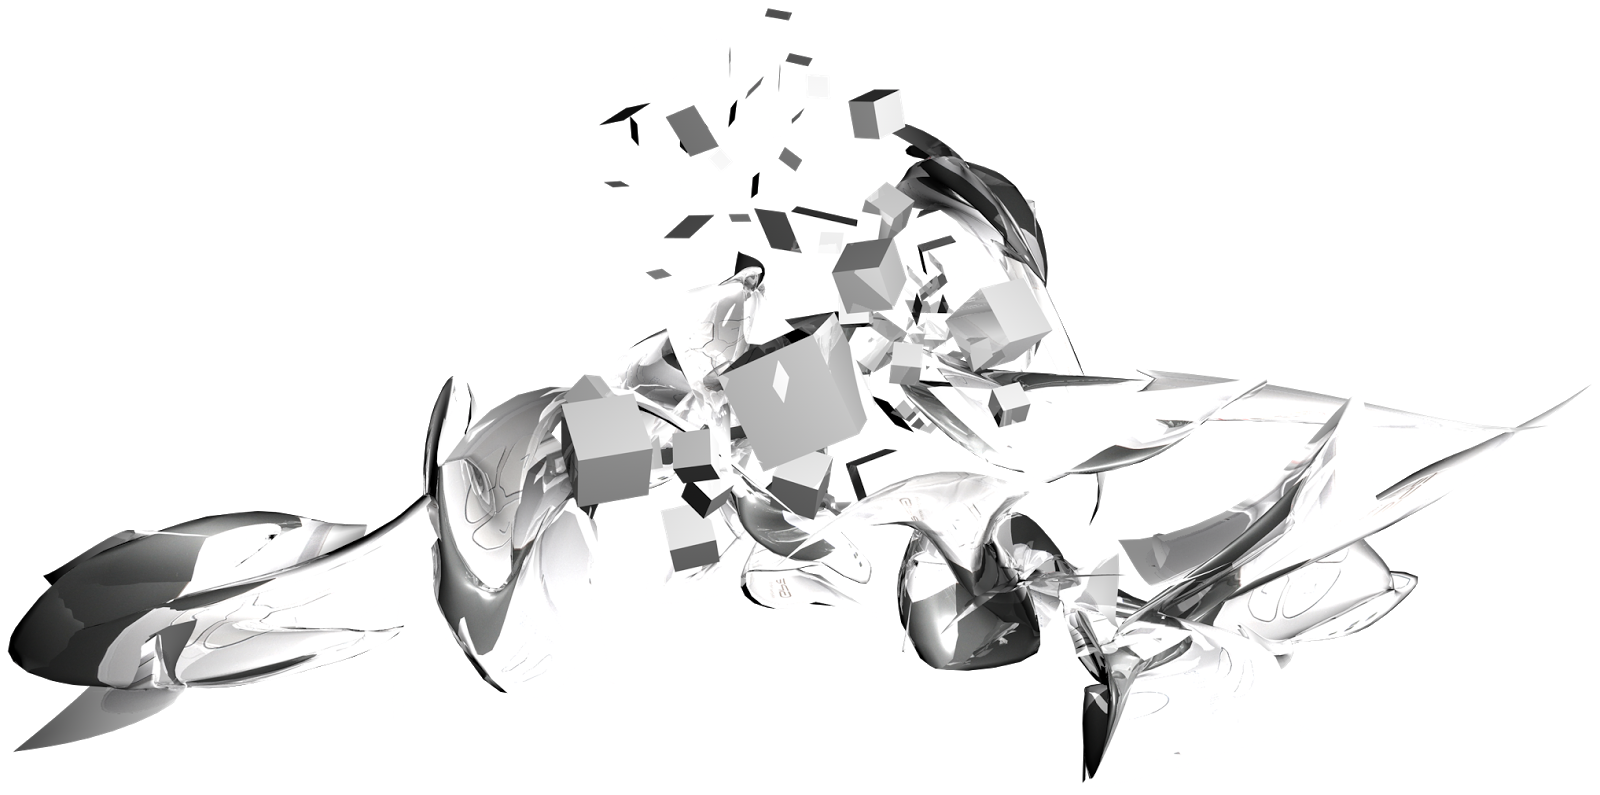 Black effects png. Artistic silver art image